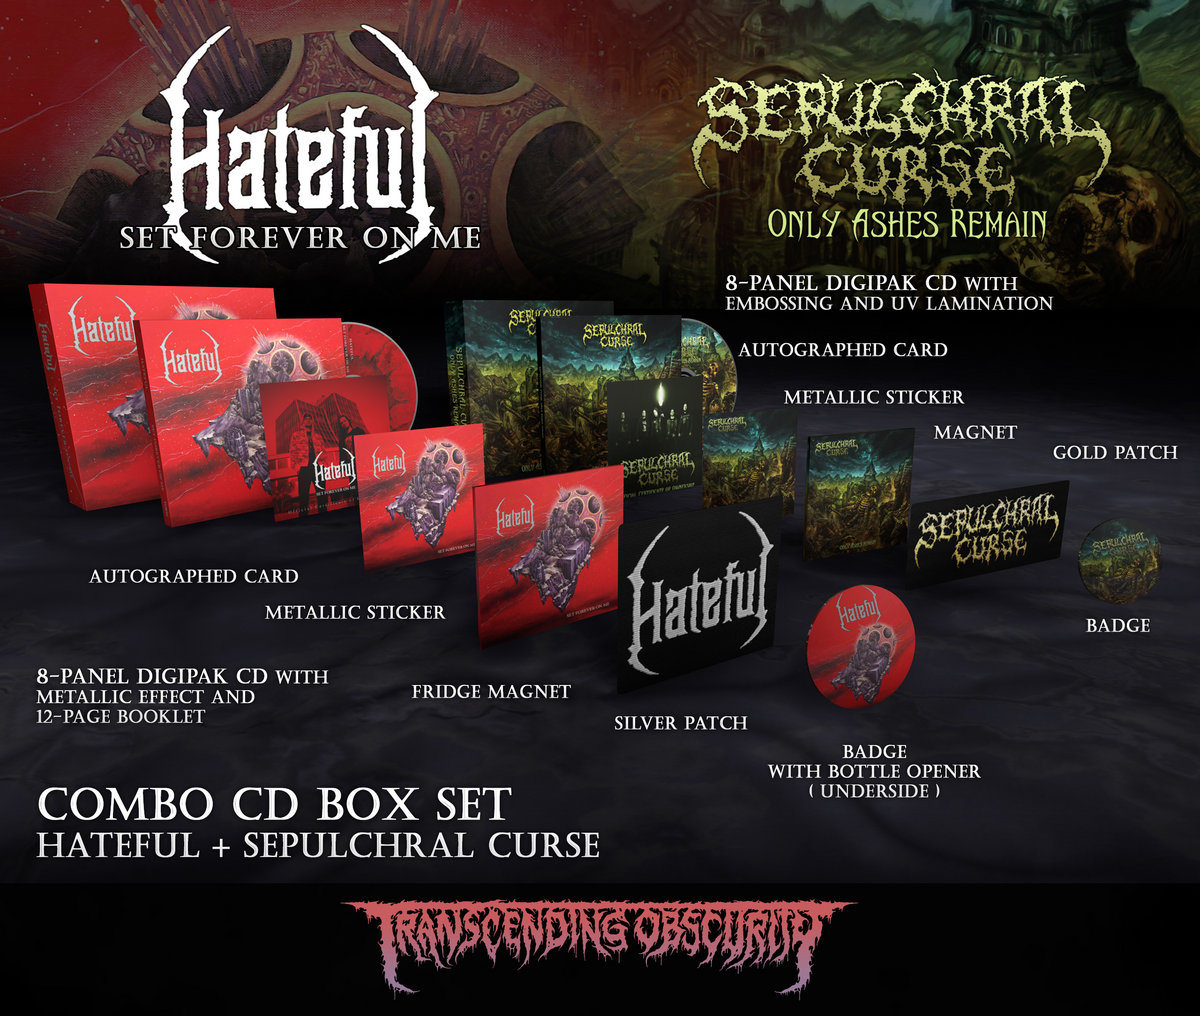 HATEFUL + SEPULCHRAL CURSE Autographed CD Box Set Combo